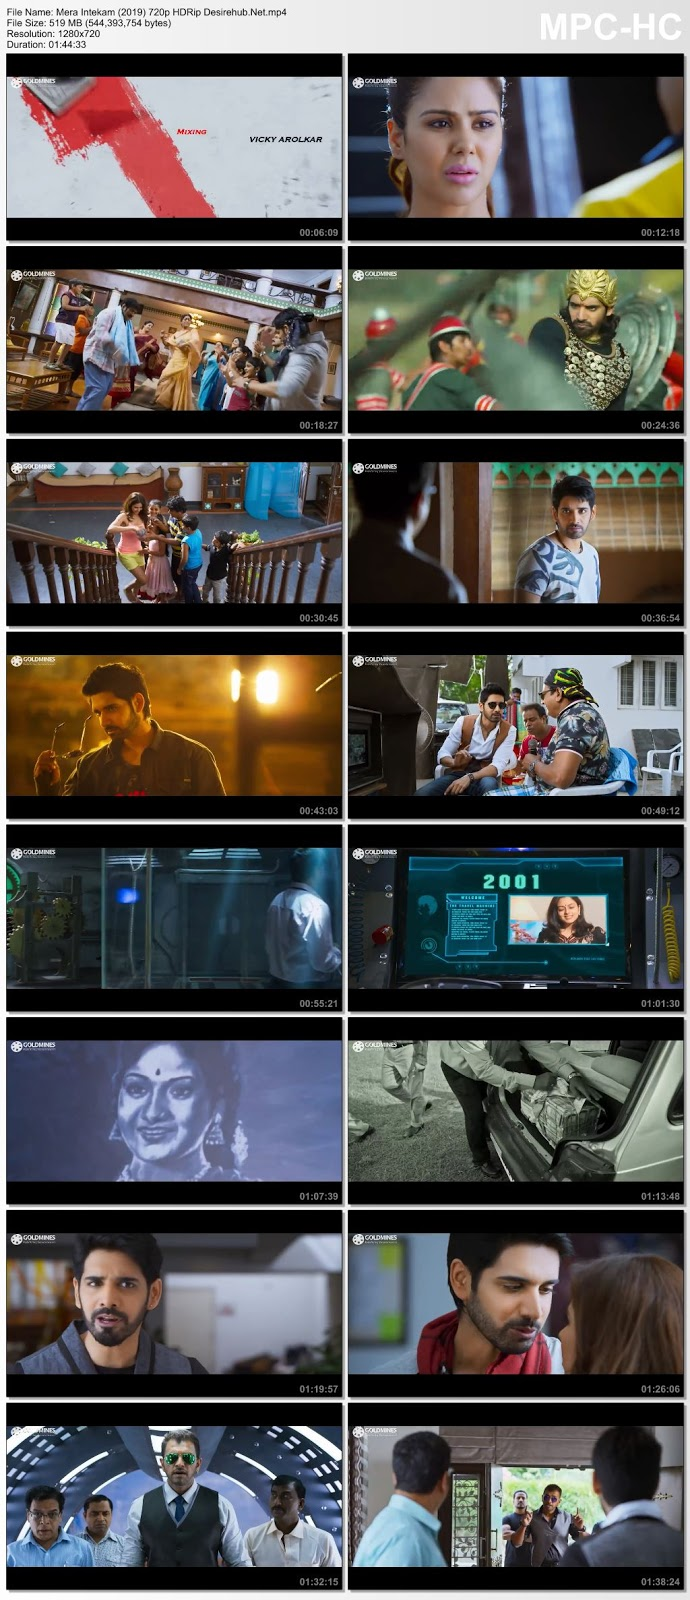 Mera Intekam (Aatadukundam Raa) 2019 Hindi Dubbed 720p HDRip x264 500MB Desirehub